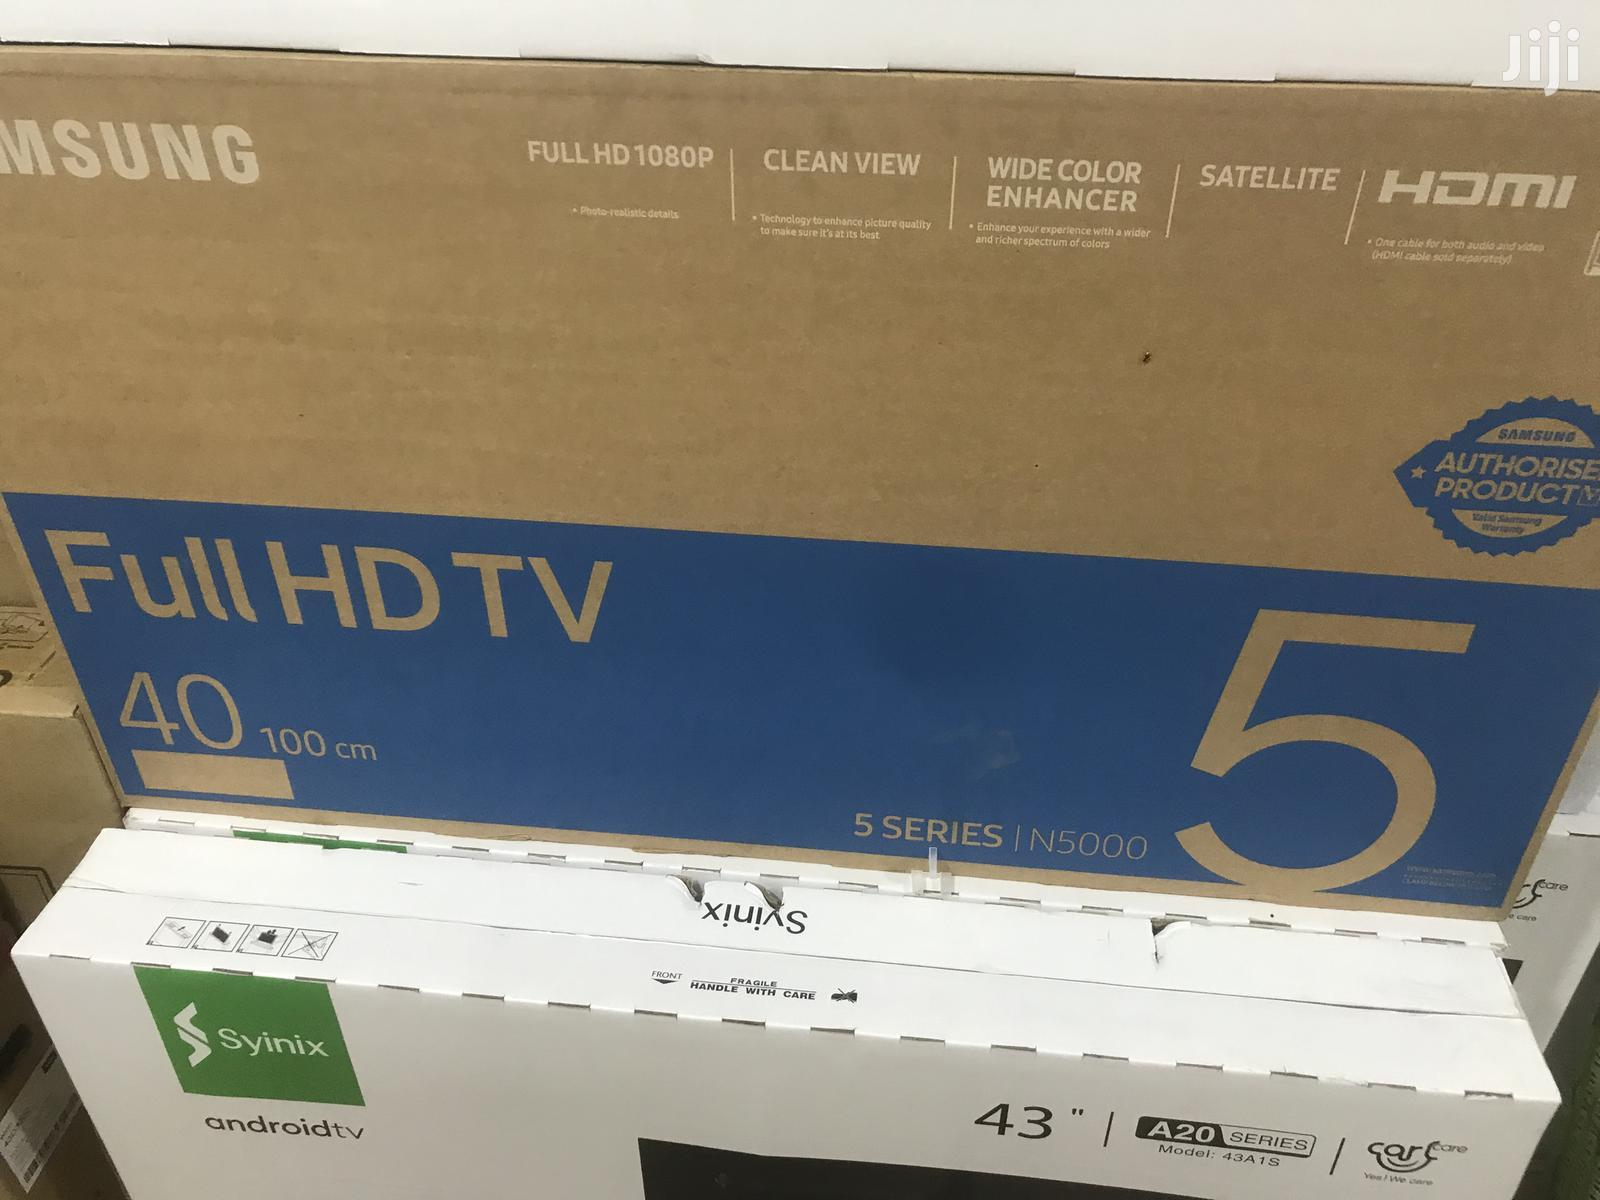 Buy A Satellite Series 5 Samsung 40 Inch LED Full HD TV